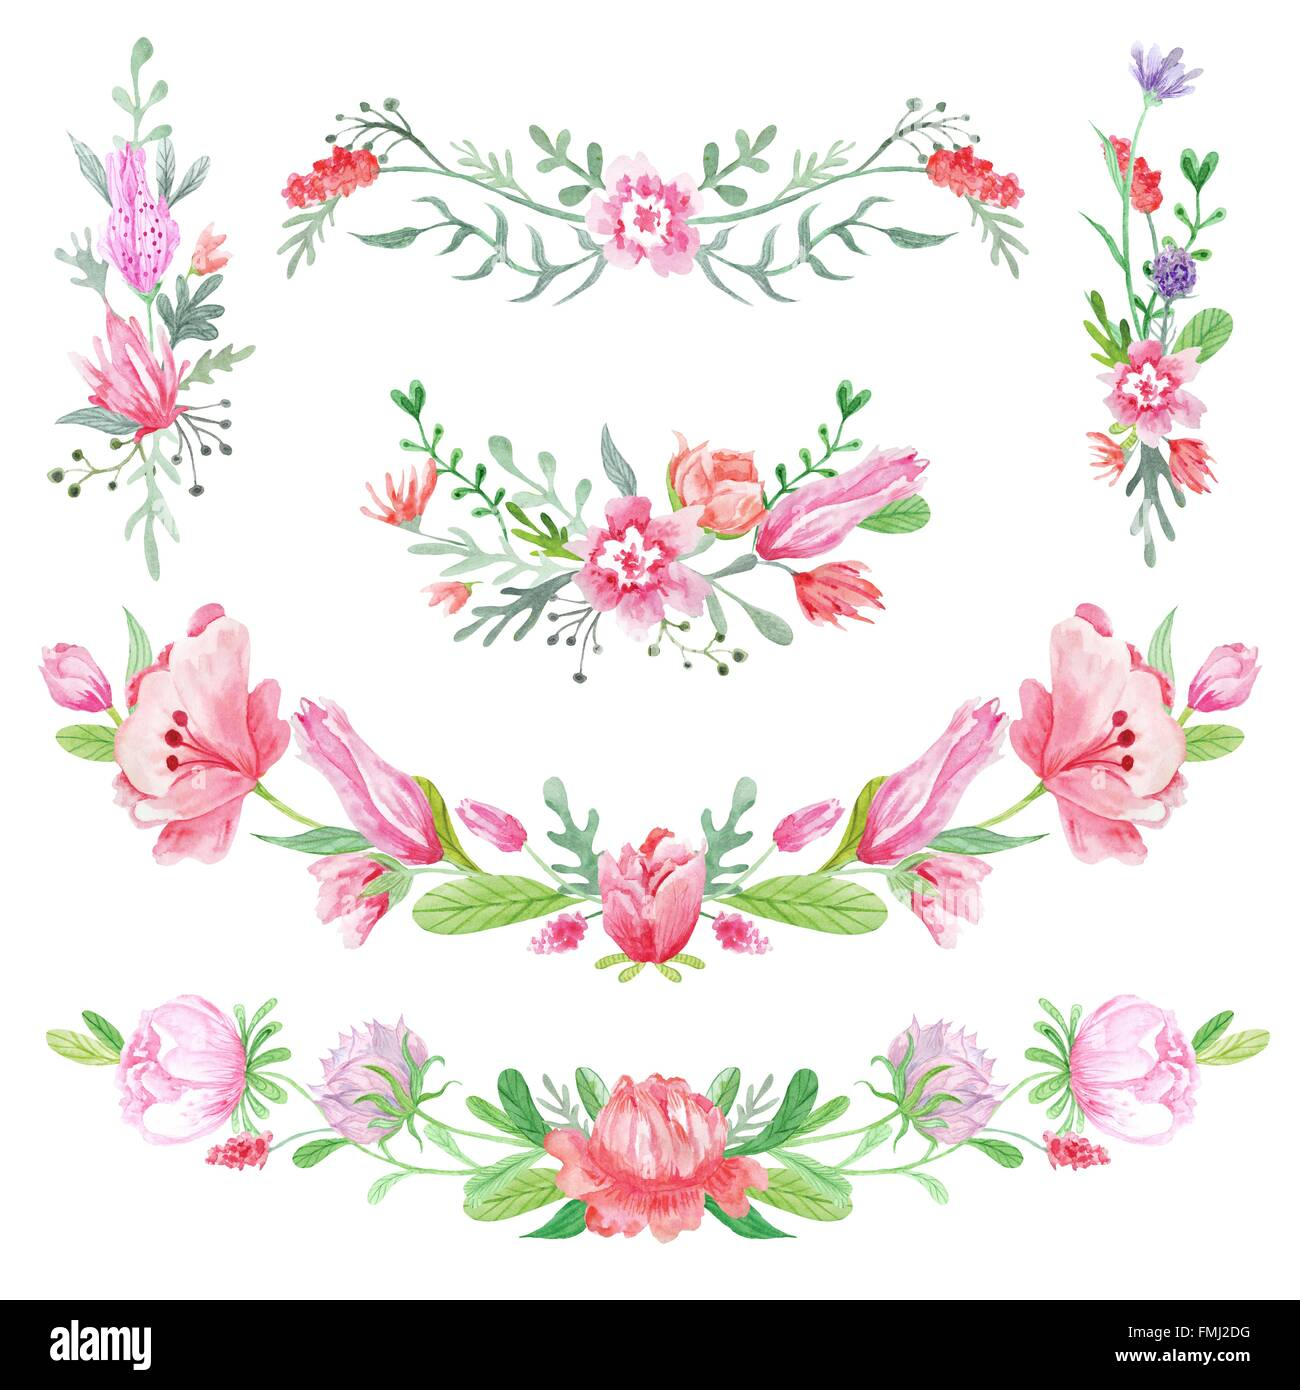 Creative Spring Watercolor Color Wreath Borders On White